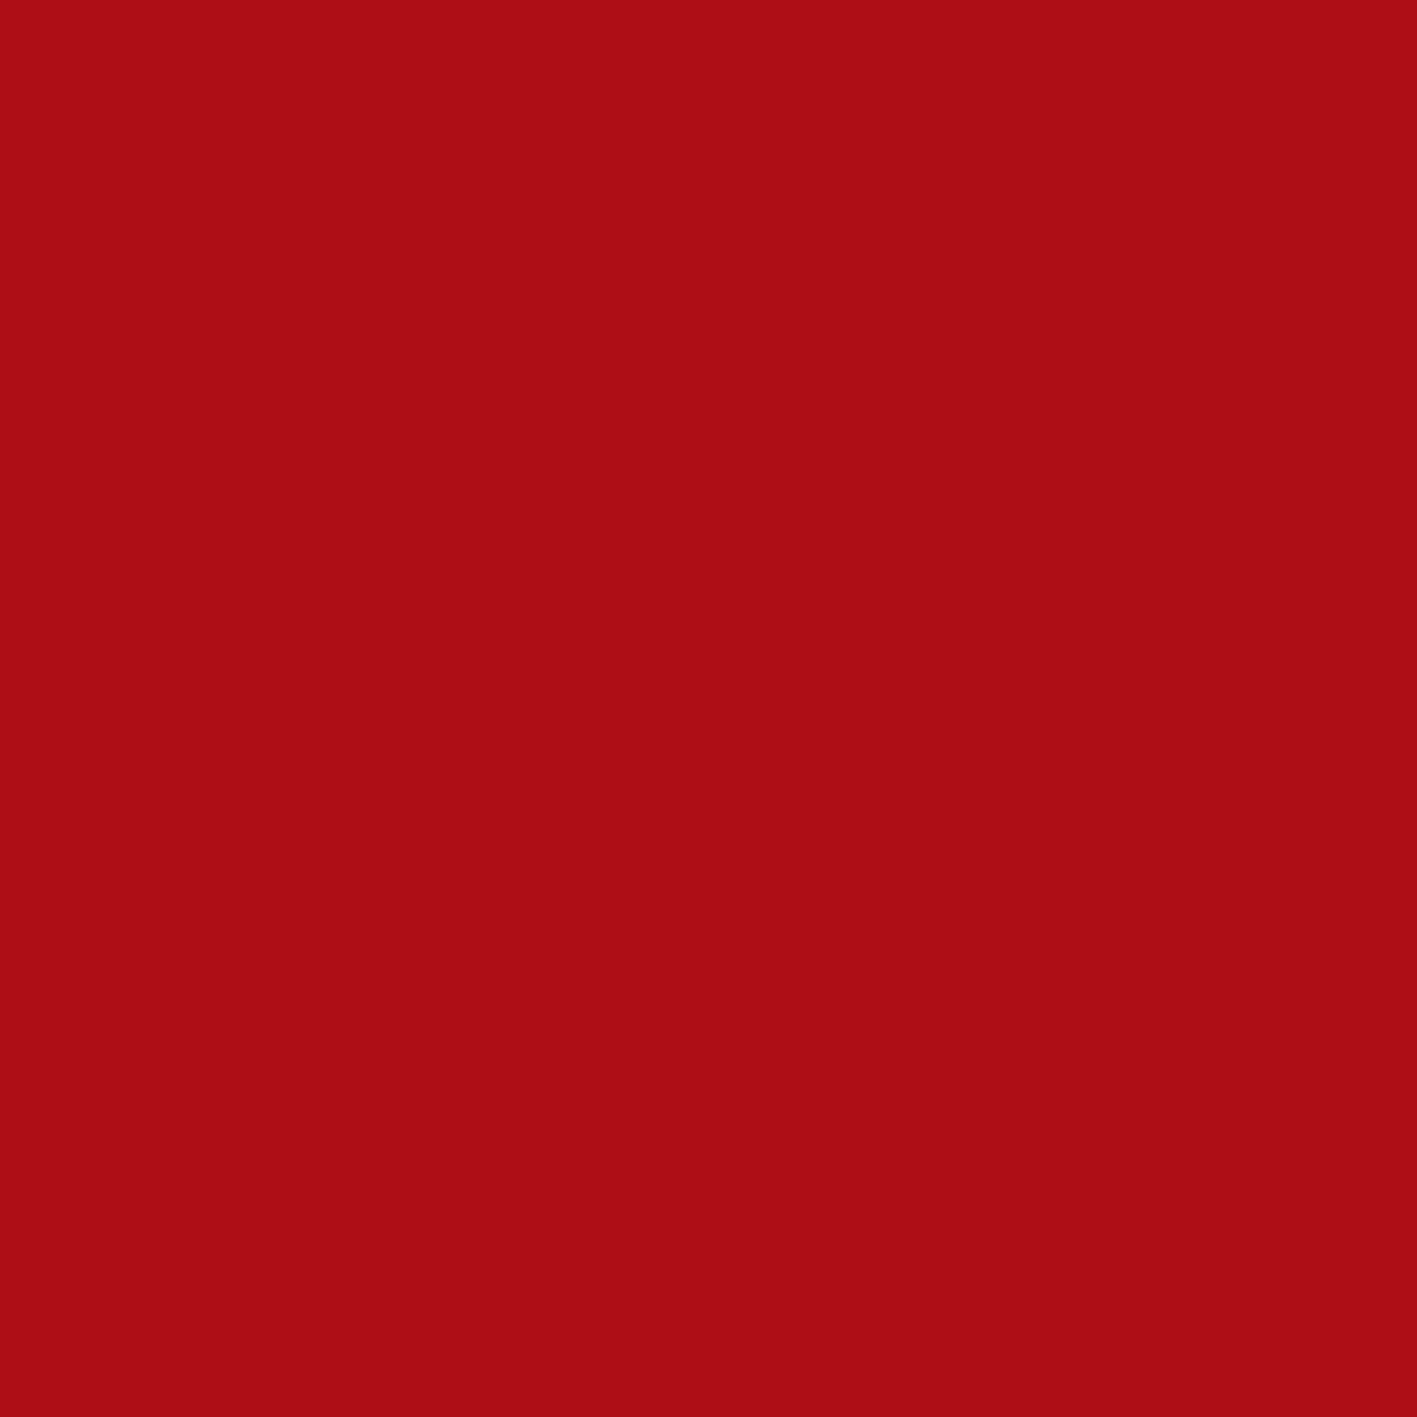 RAL 3013 Tomato Red